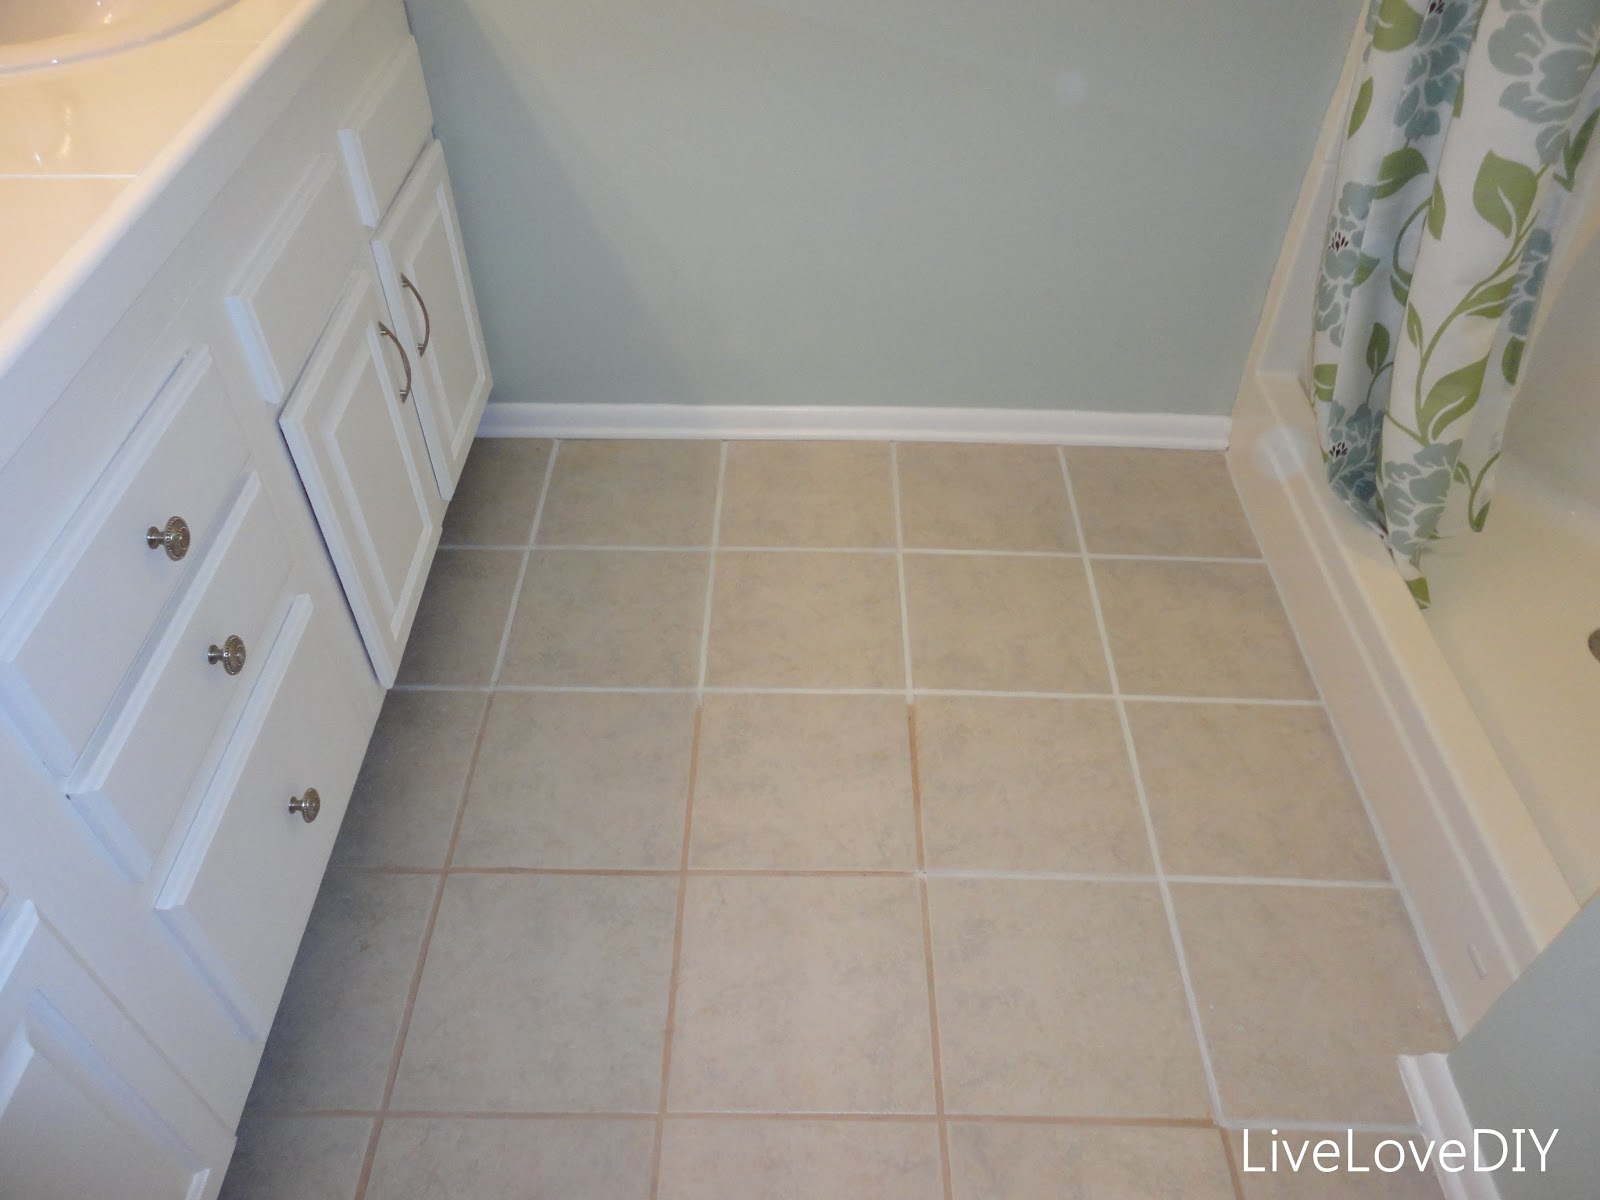 LiveLoveDIY How To Restore Dirty Tile Grout - Bathroom tile restoration